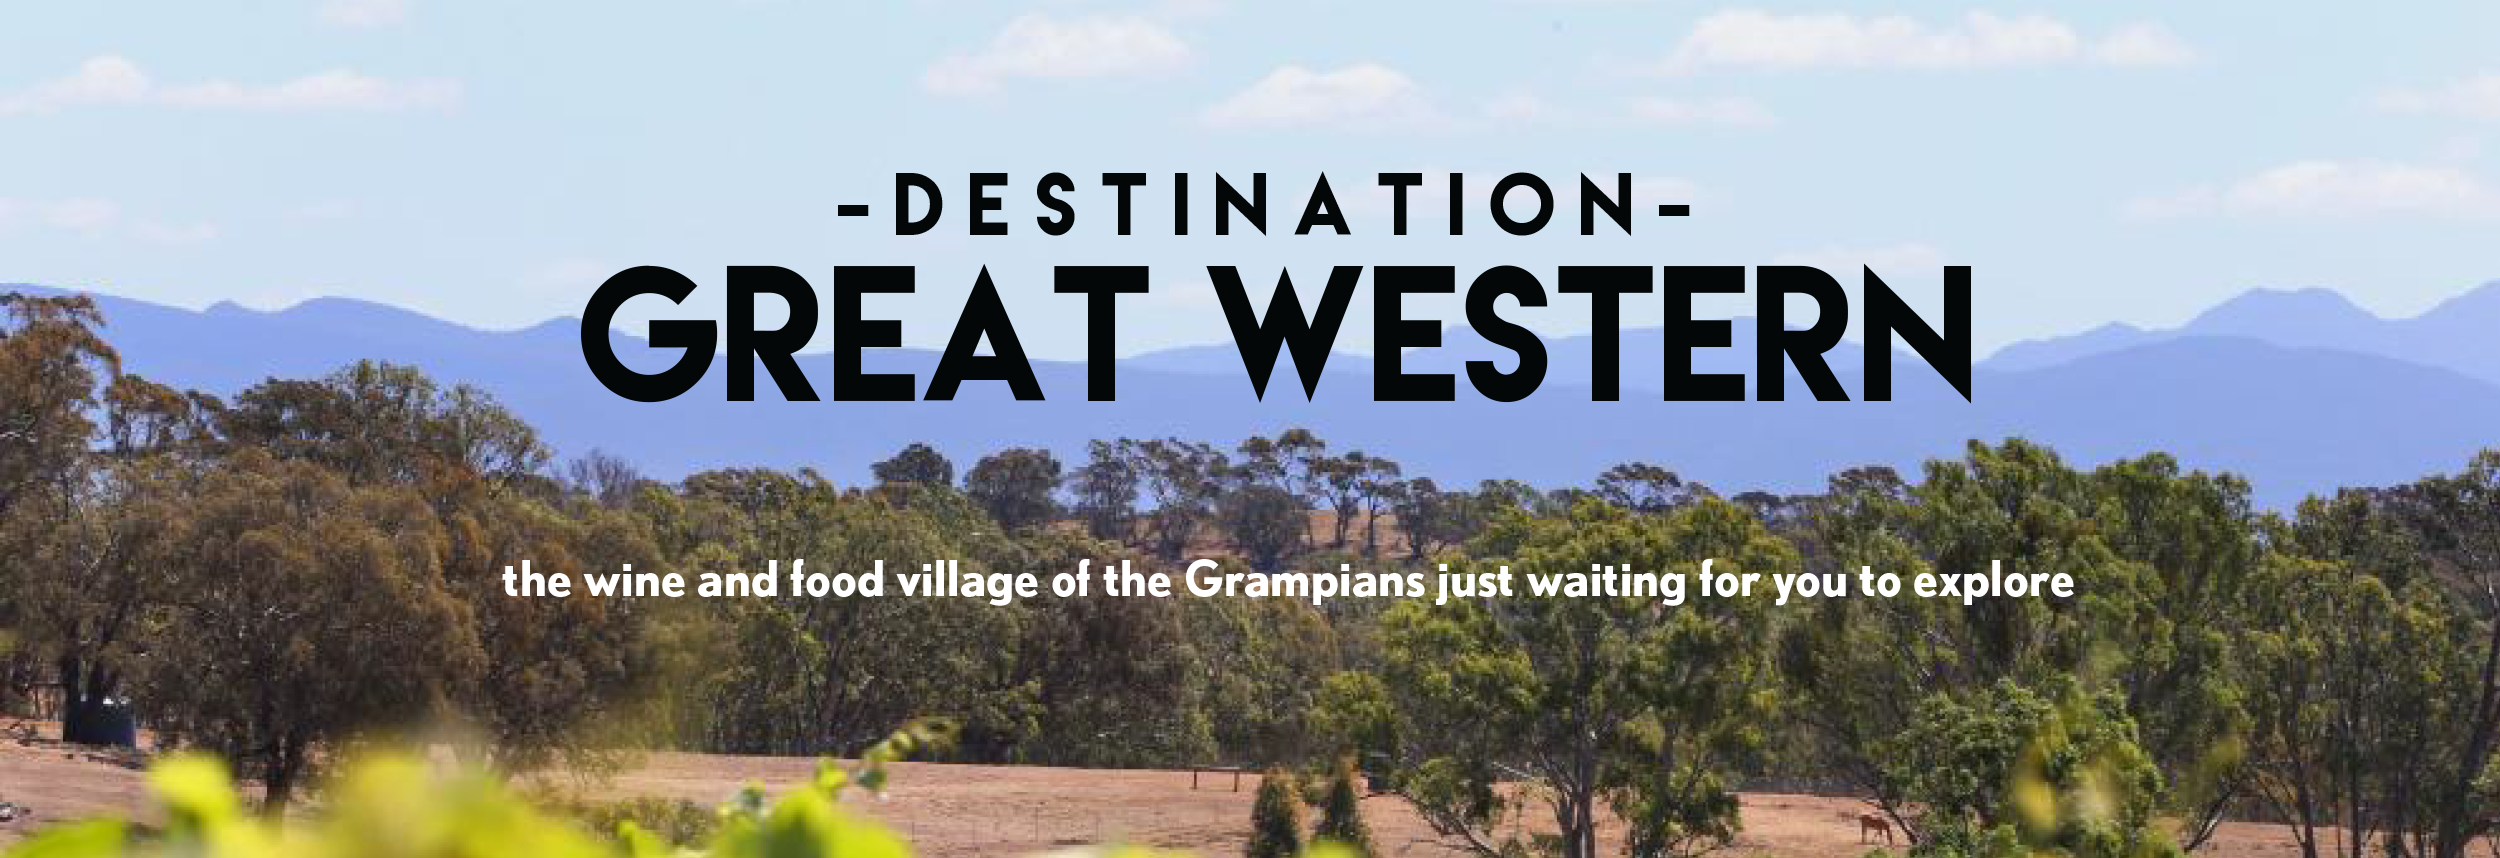 Destination Great Western